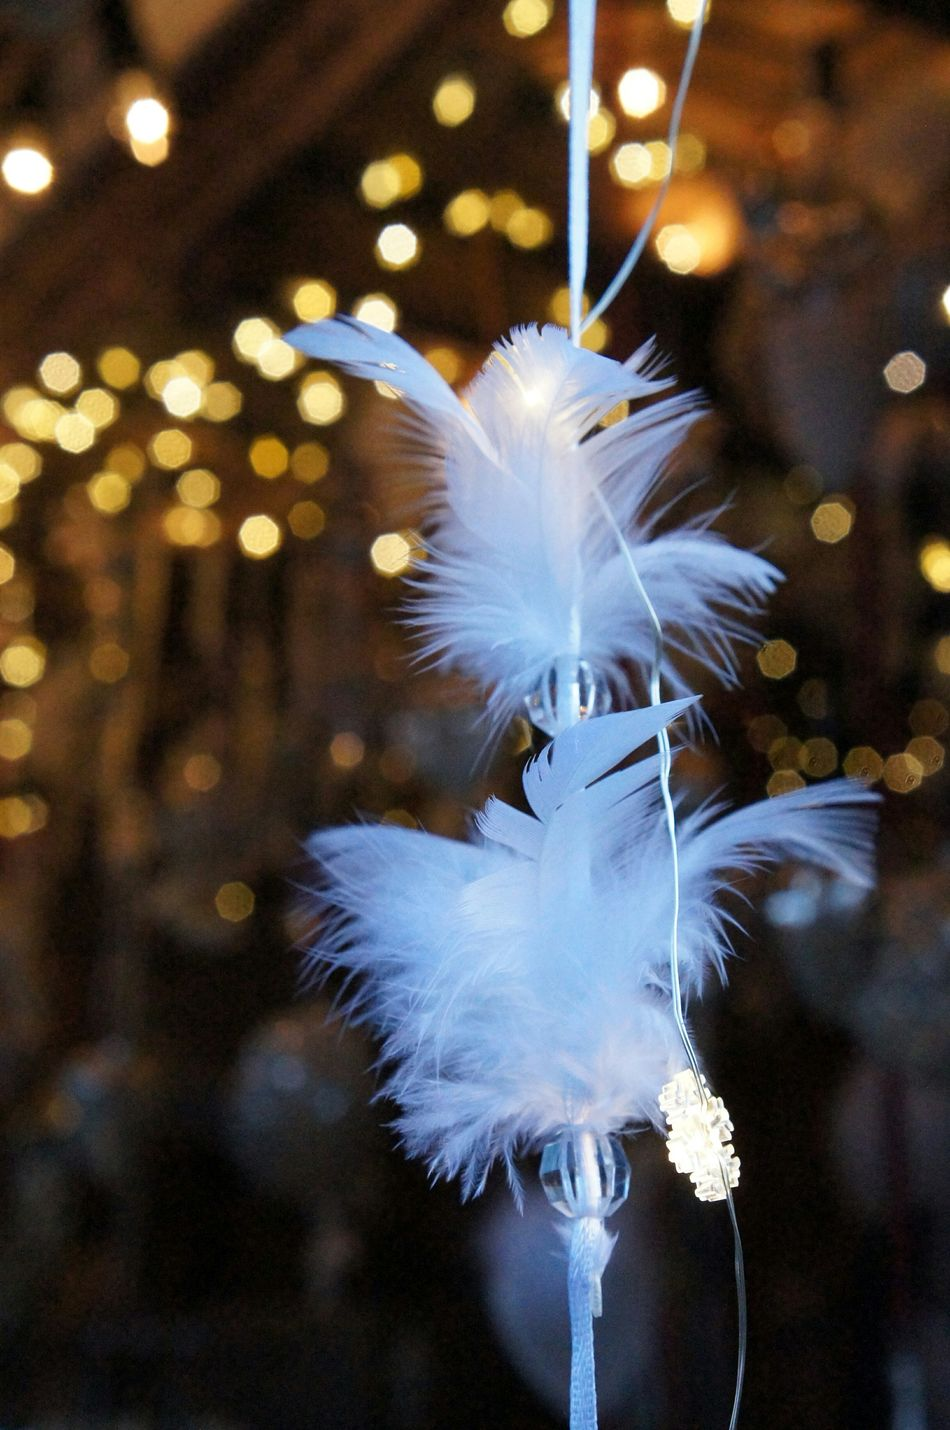 Best Christmas Lights Christmas Time Christmas 2015 Lights Feathers Feather  Christmas Lights Christmas Decorations Chrismas Market December 2015 Decorations Nice Atmosphere Harmonies Street Photography Night Lights My Winter Favorites Colourful Creative Light And Shadow